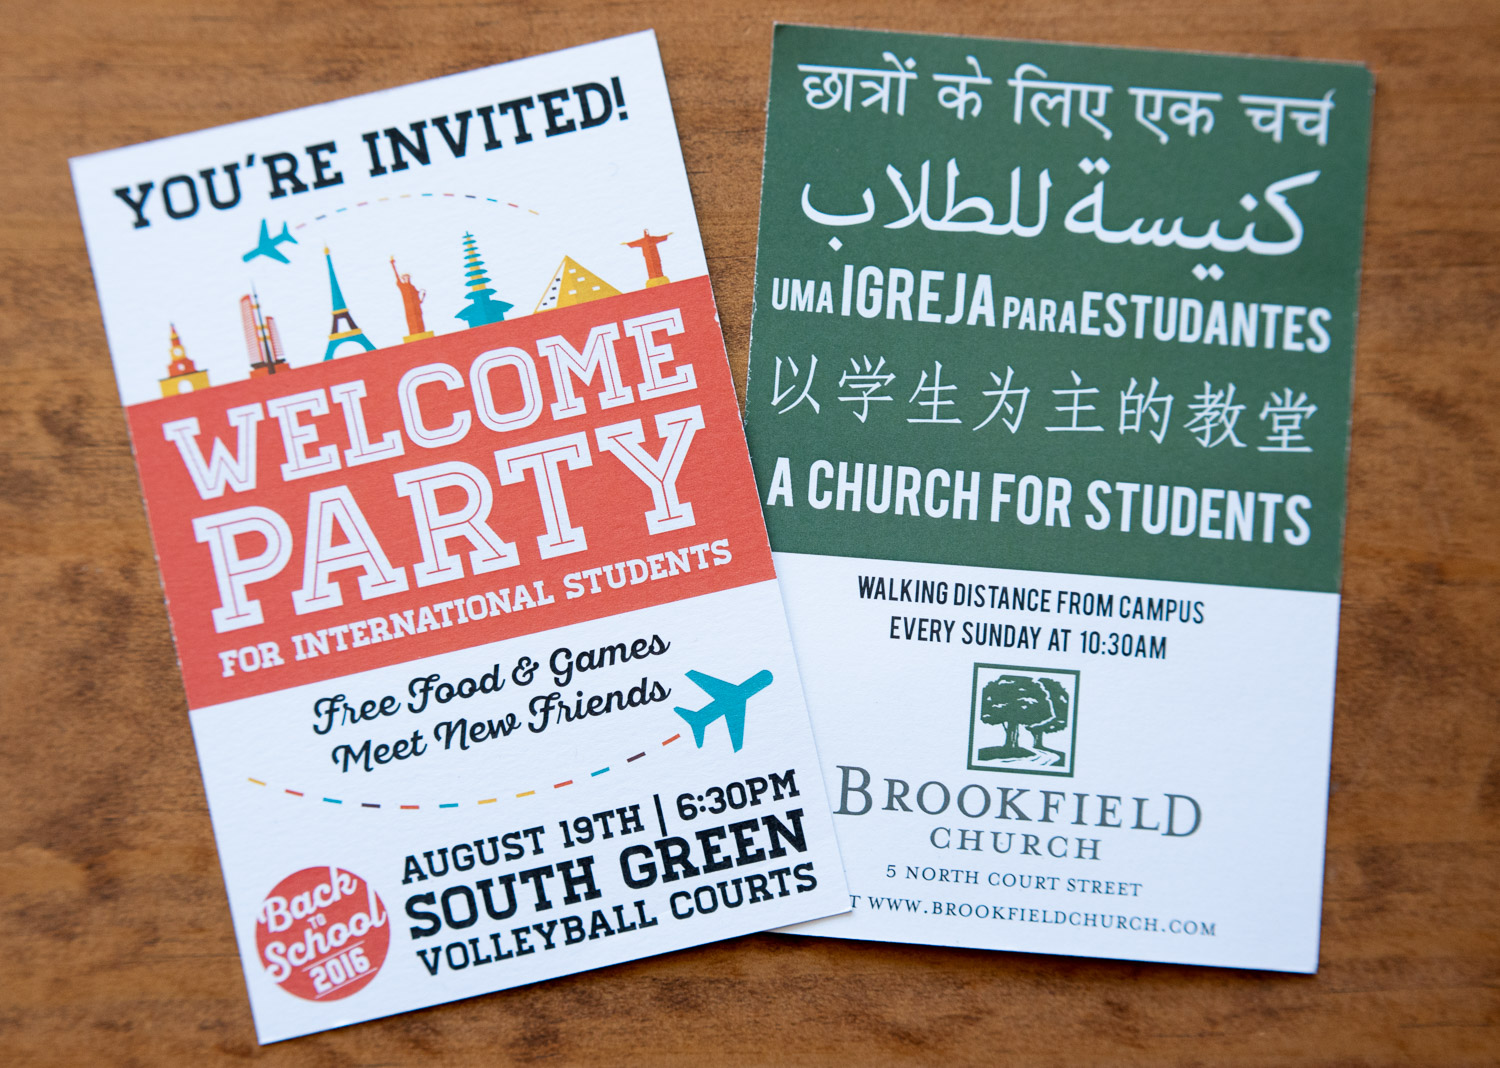 The front and back of a postcard for an international student party.